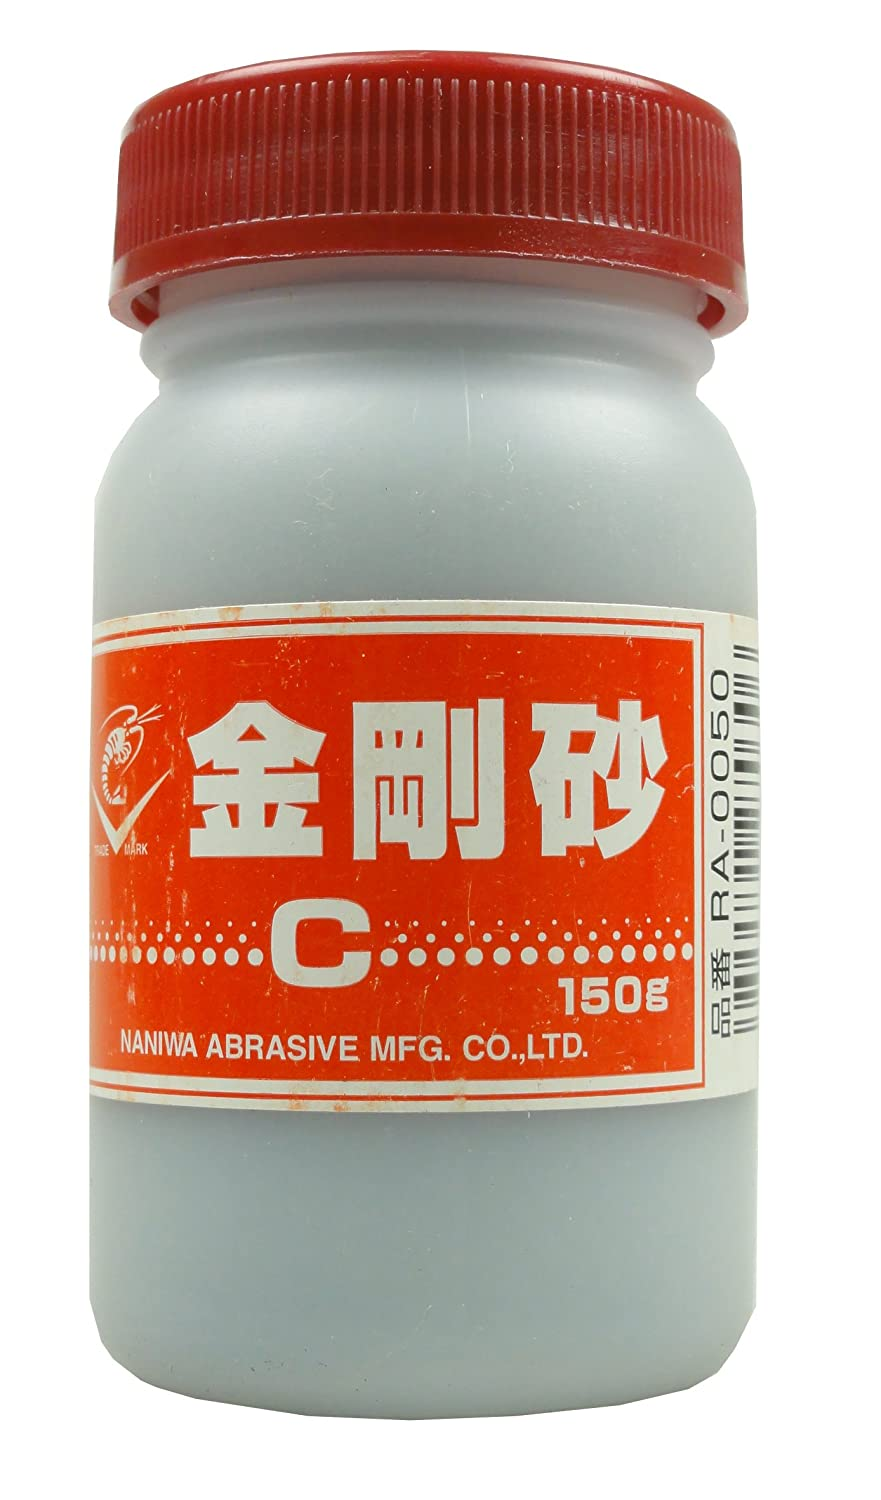 Naniwa abrasive Mfg Silicon carbide powder RA-0050 (Japan Import) RA0050